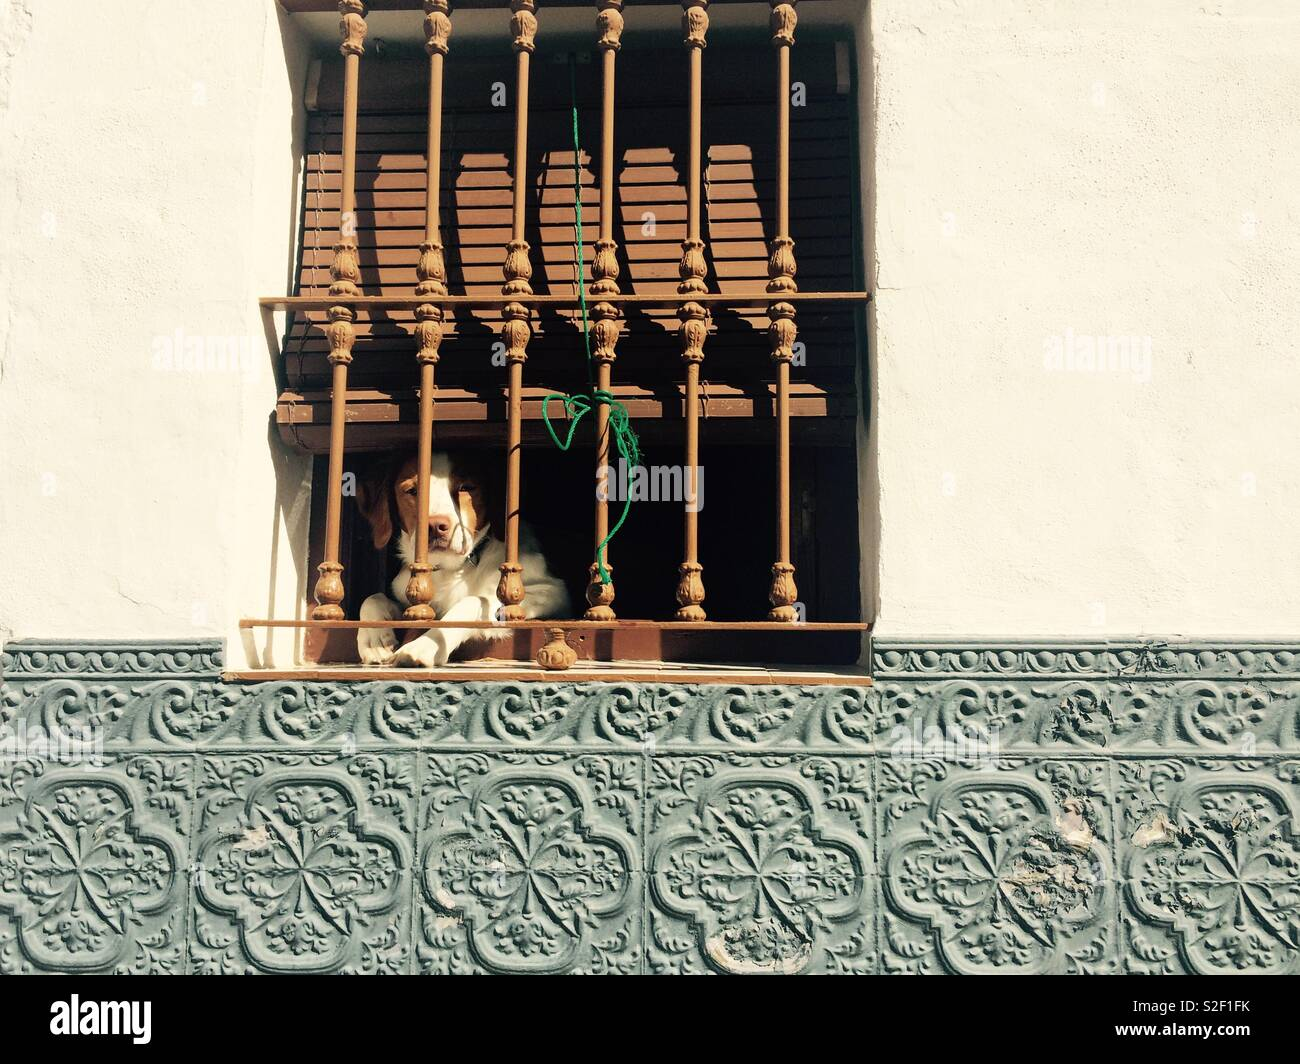 Small brown and white dog lies peeping or looking out through decorative iron bars of a window on street level in a village in Andalucia Spain - Stock Image